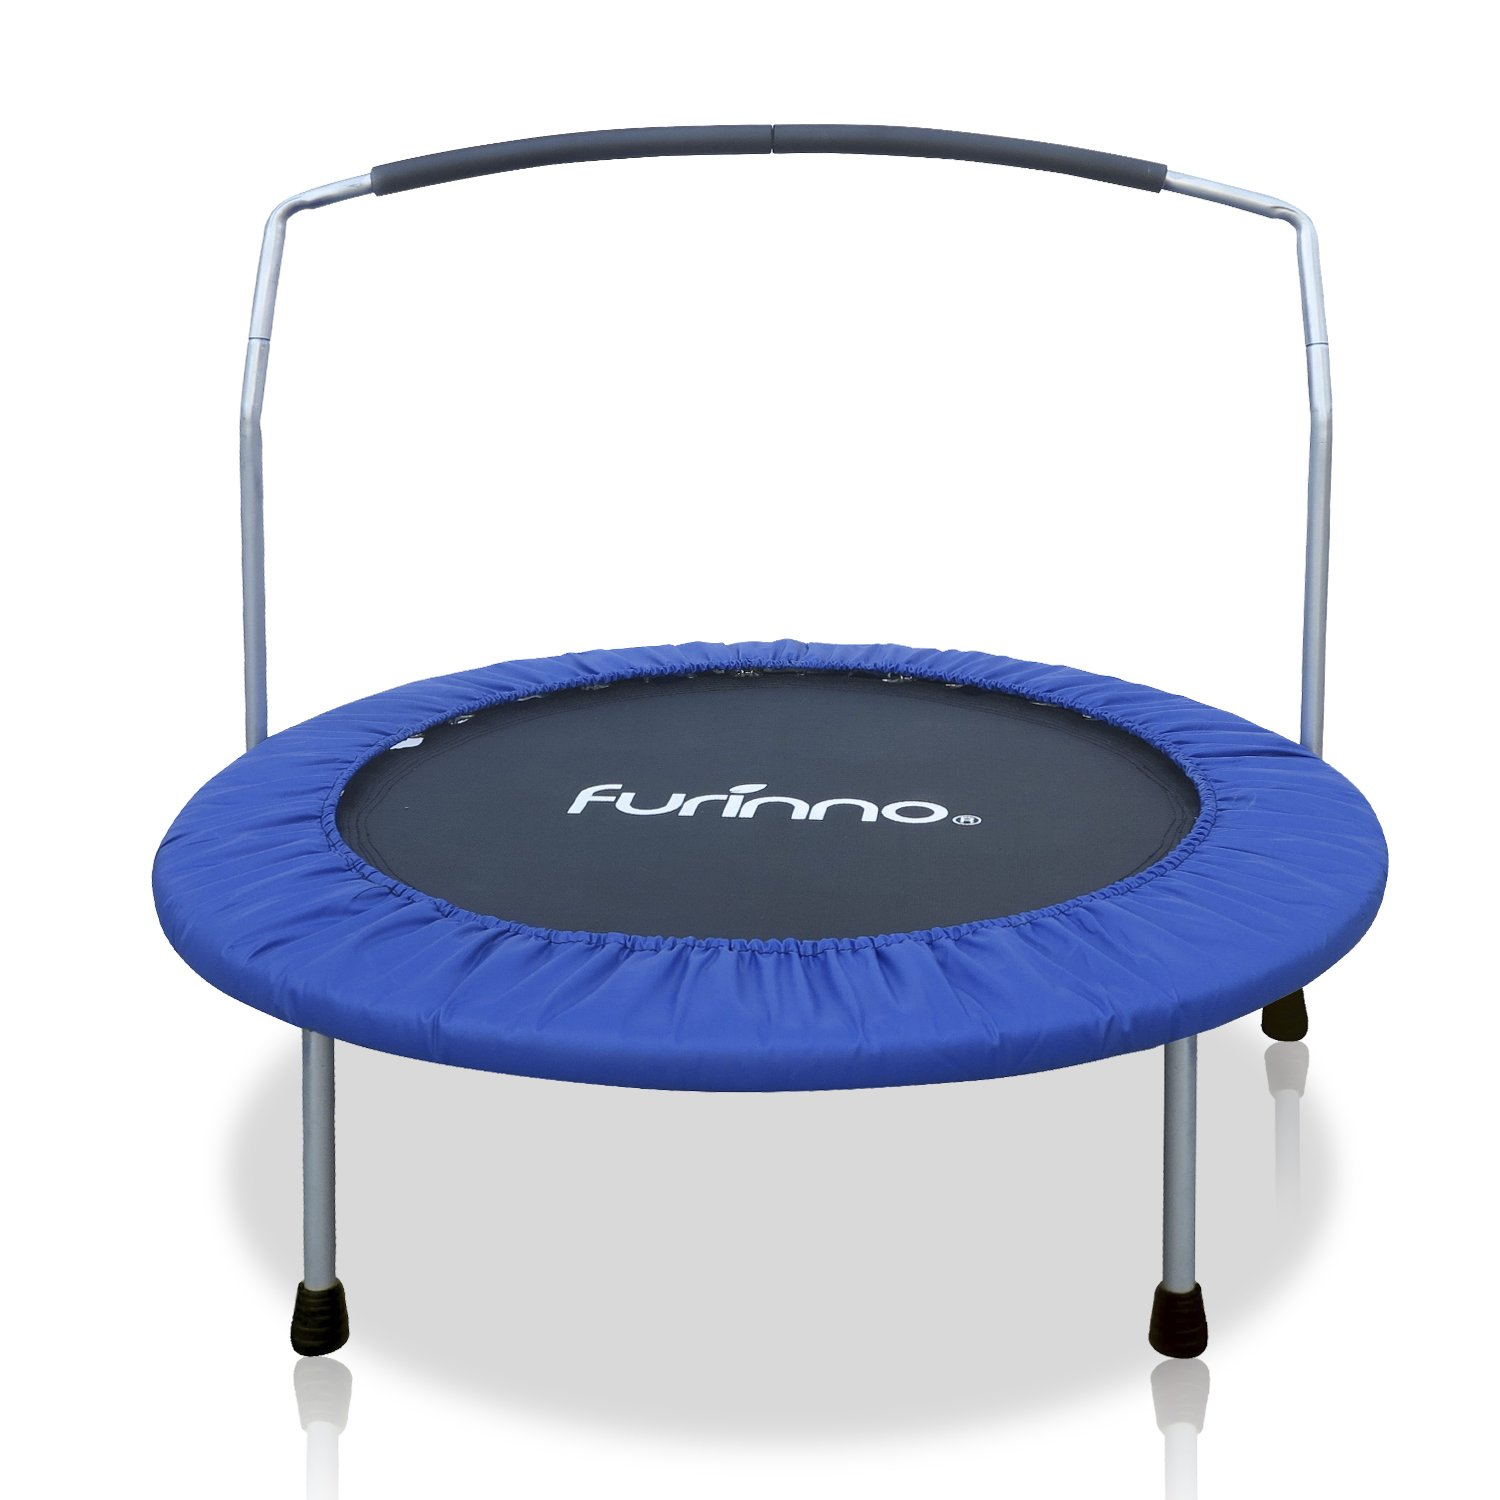 FURINNO FT7236H Trampoline with Handle bar, 36''